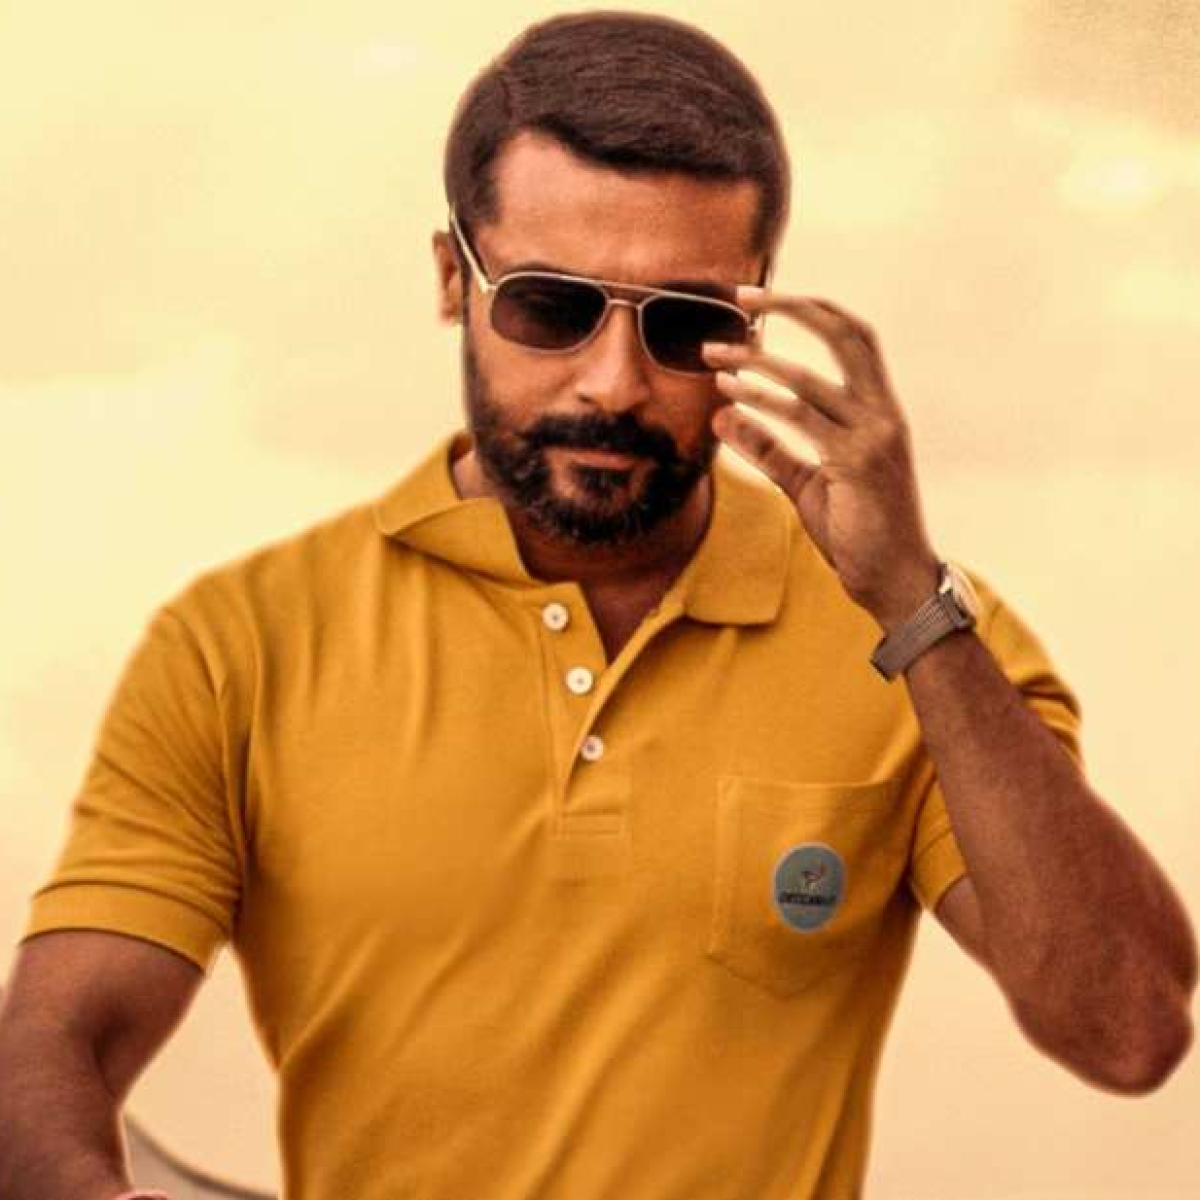 Suriya's 'Soorarai Pottru' to be screened at Golden Globe Awards 2021